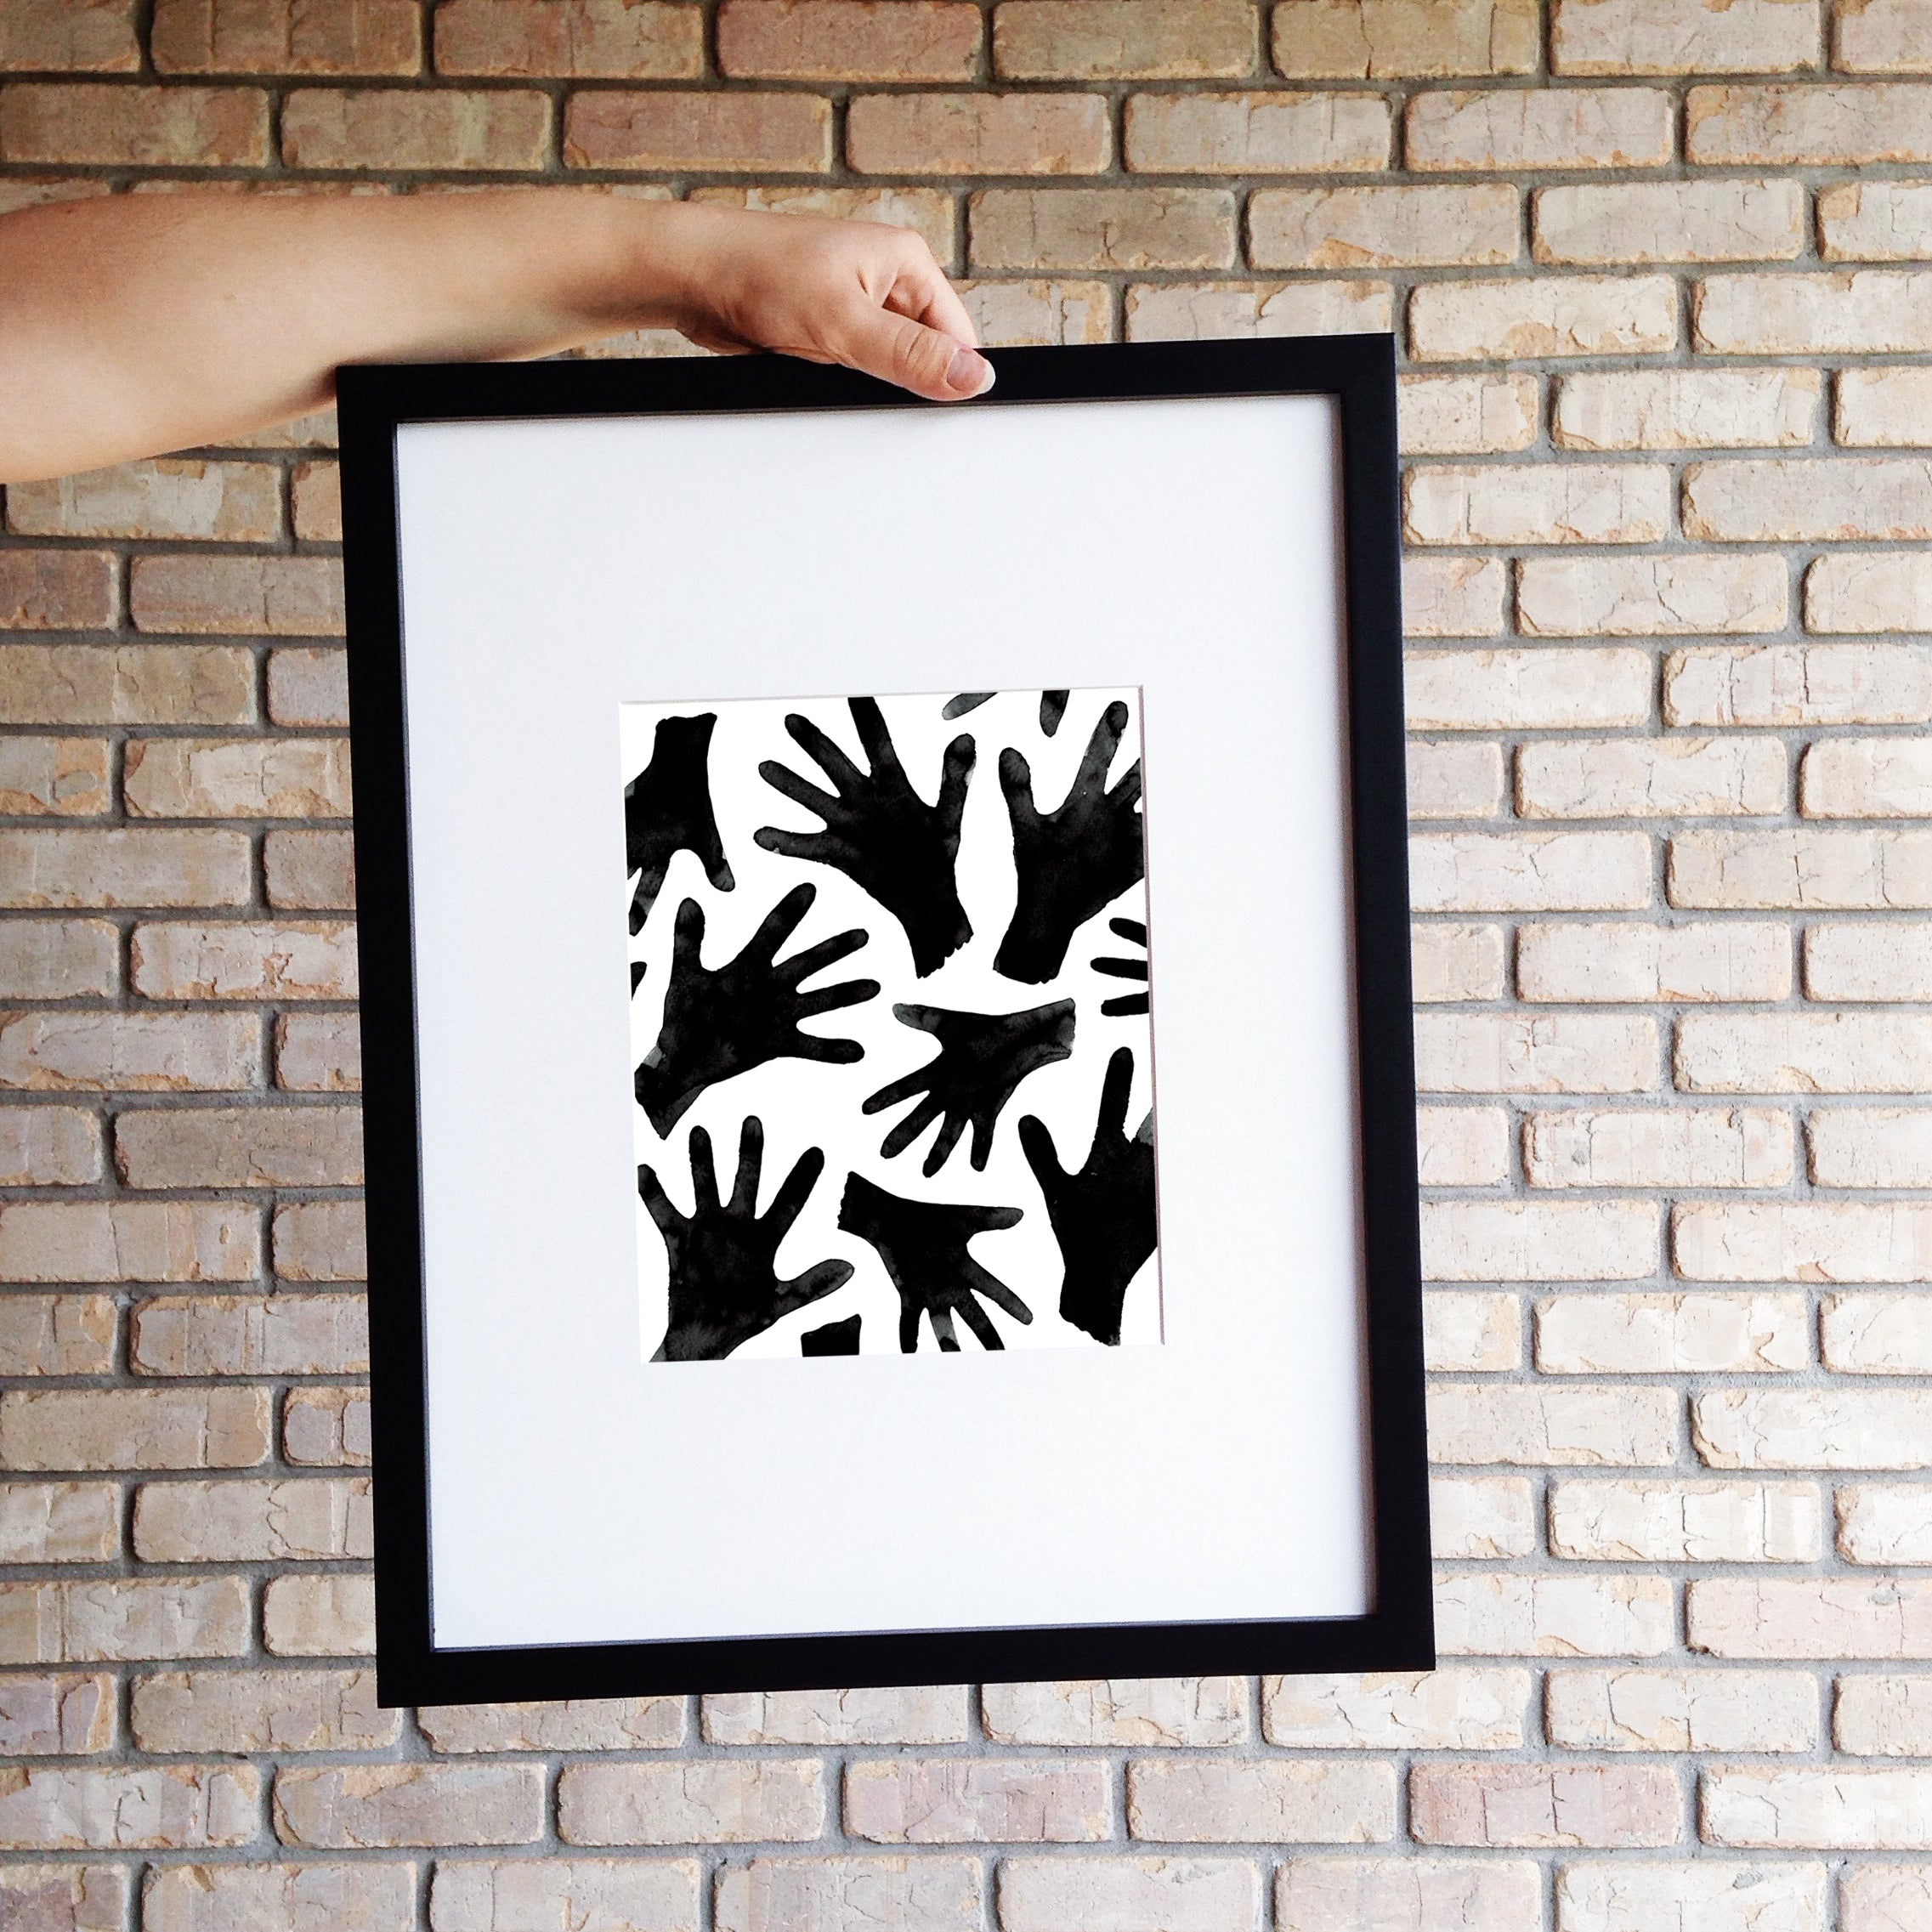 HANDS // Digital Print